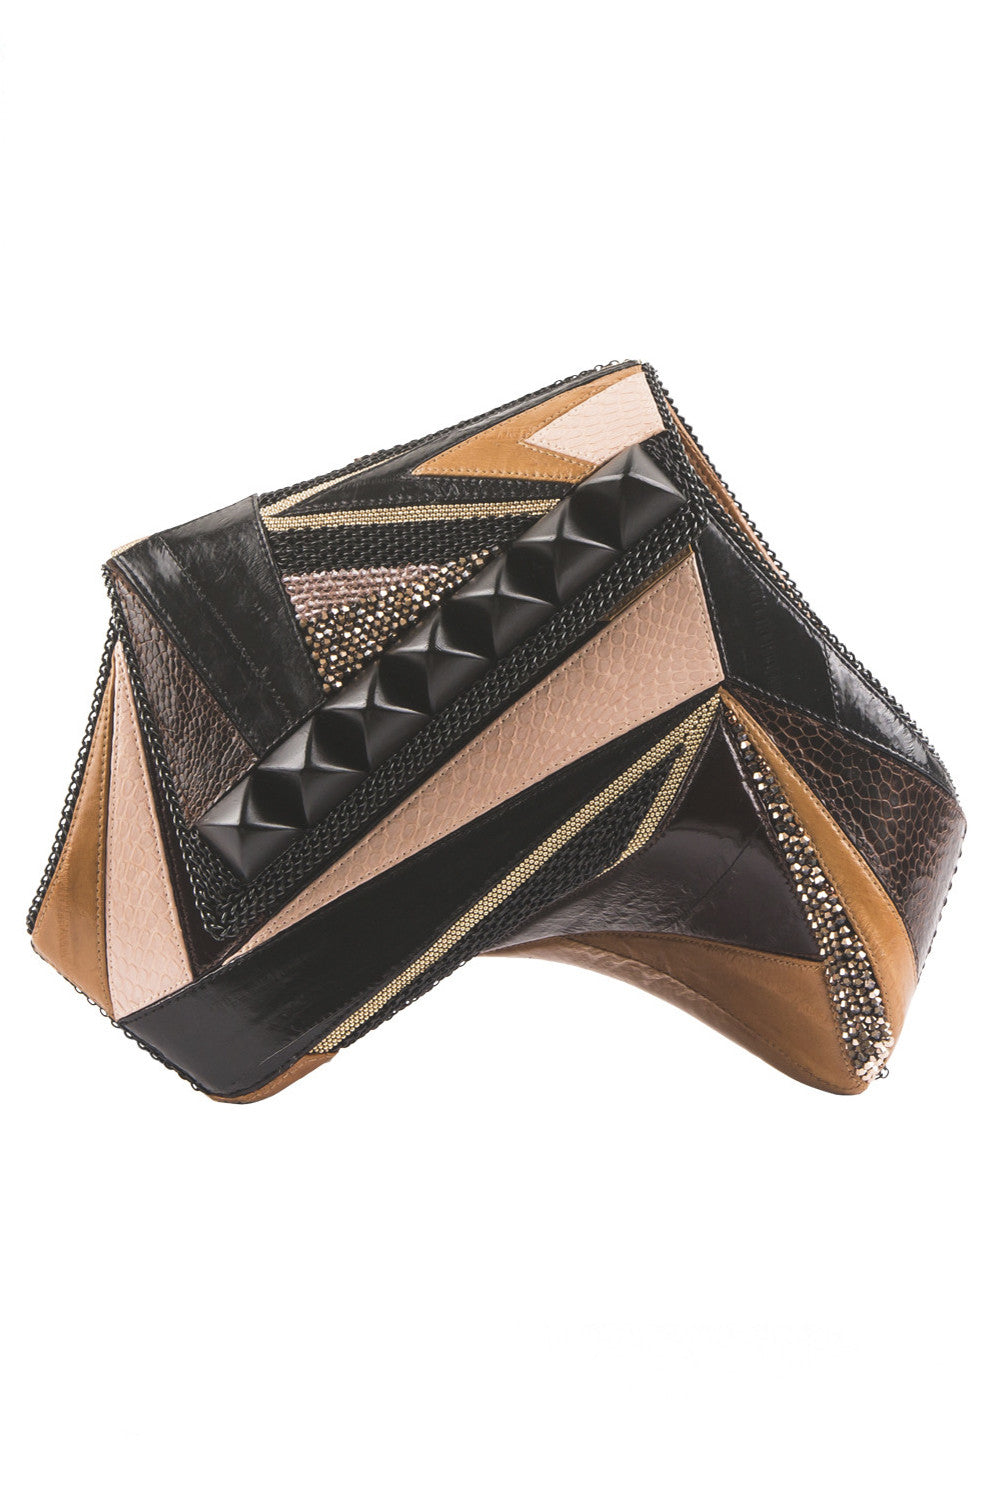 DIABOLIQUE Clutch in Black & Tan